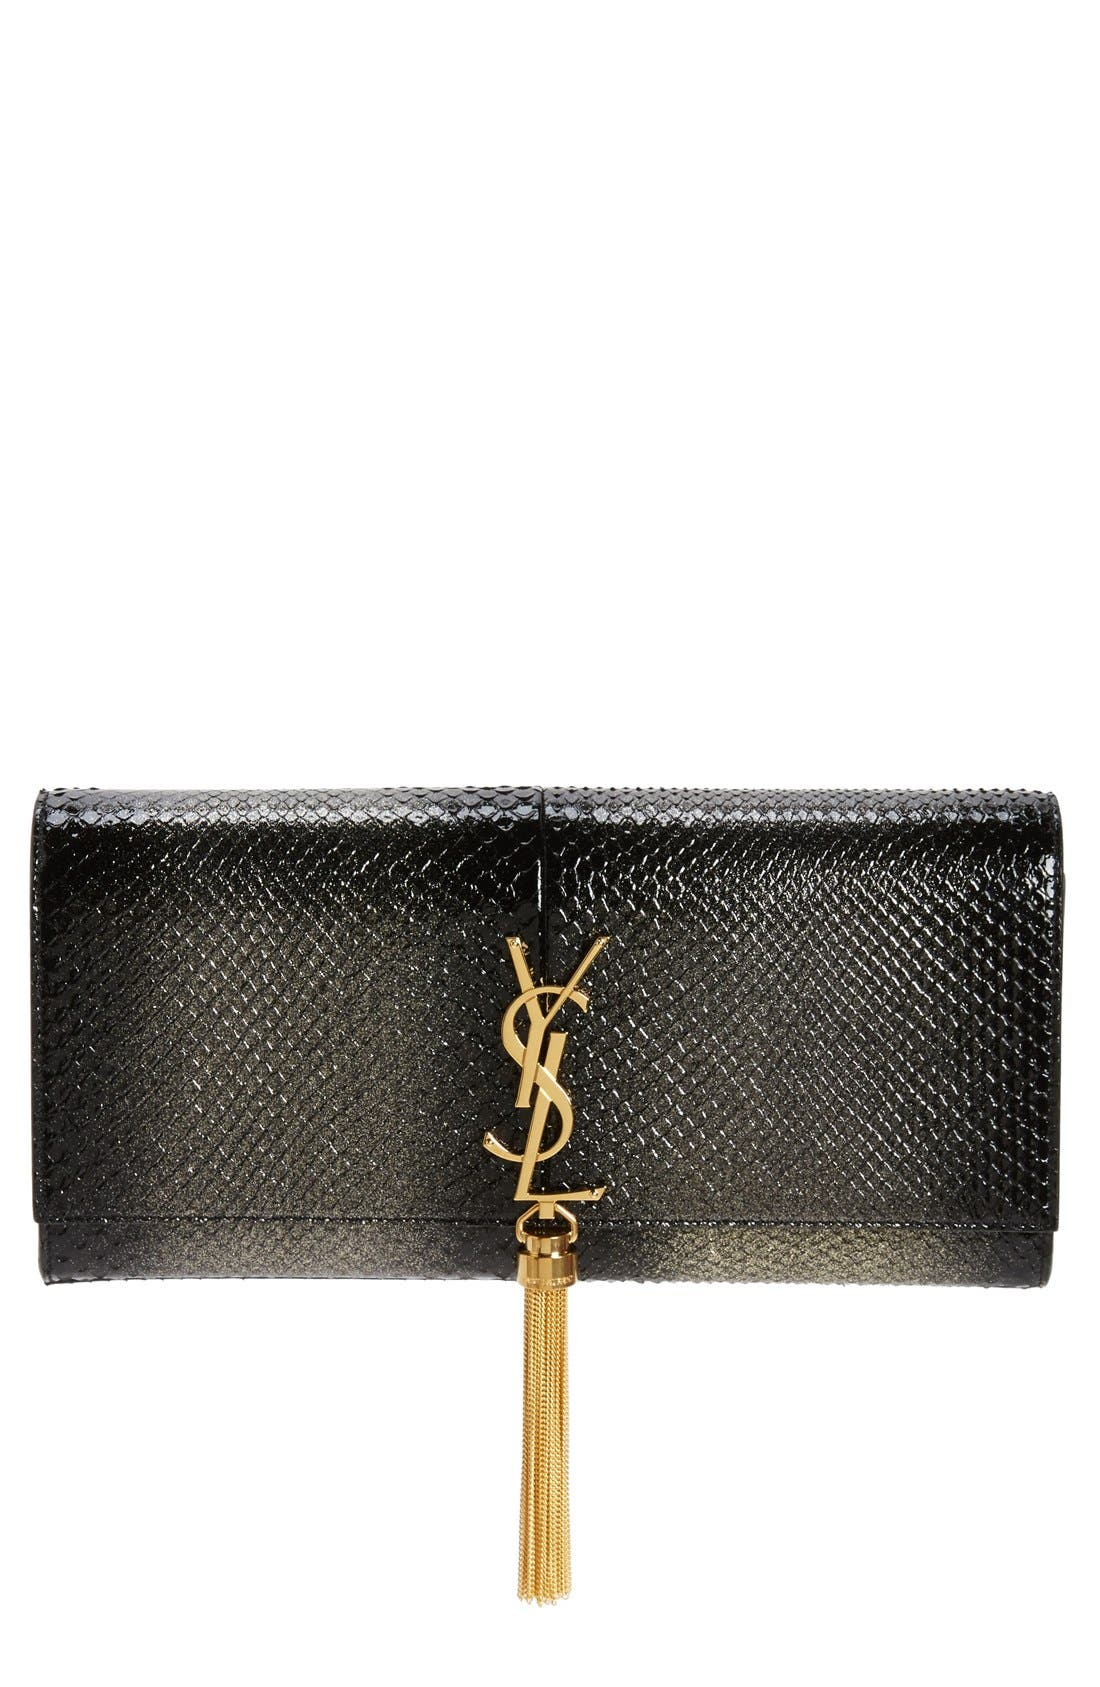 Saint Laurent Kate Monogram Genuine Python Clutch